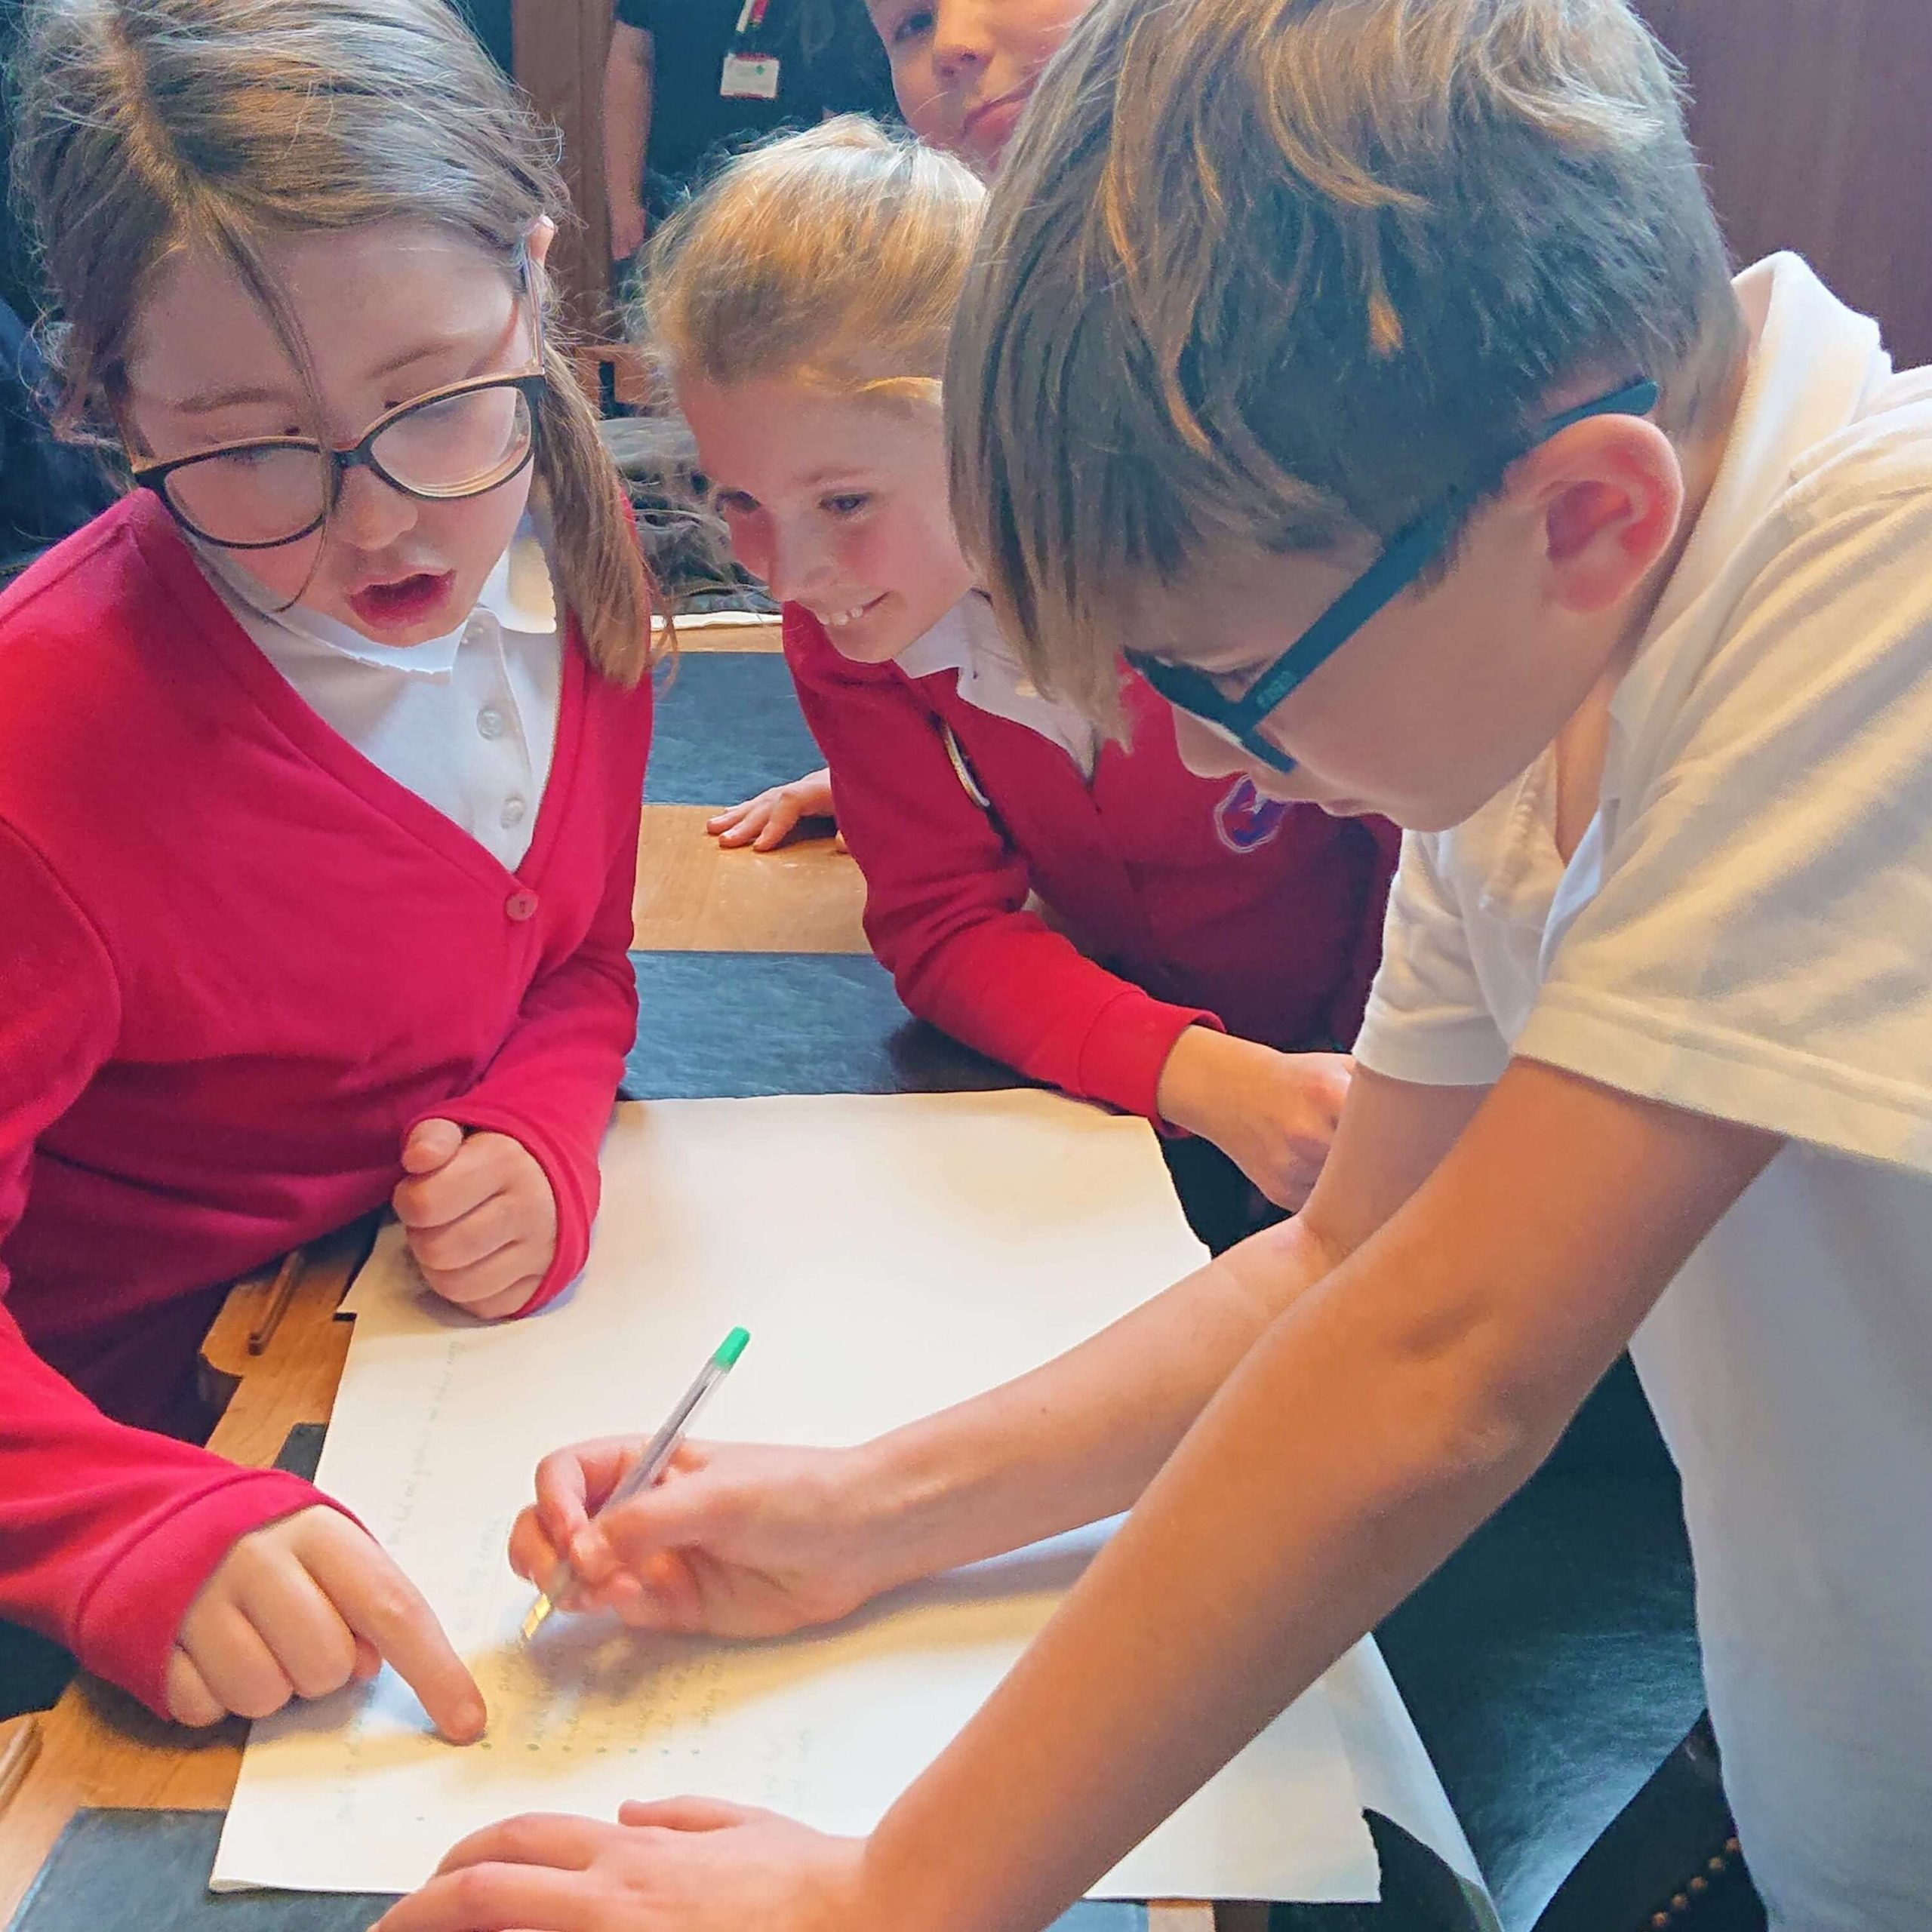 Around 100 children took part in the event at County Hall in Exeter.